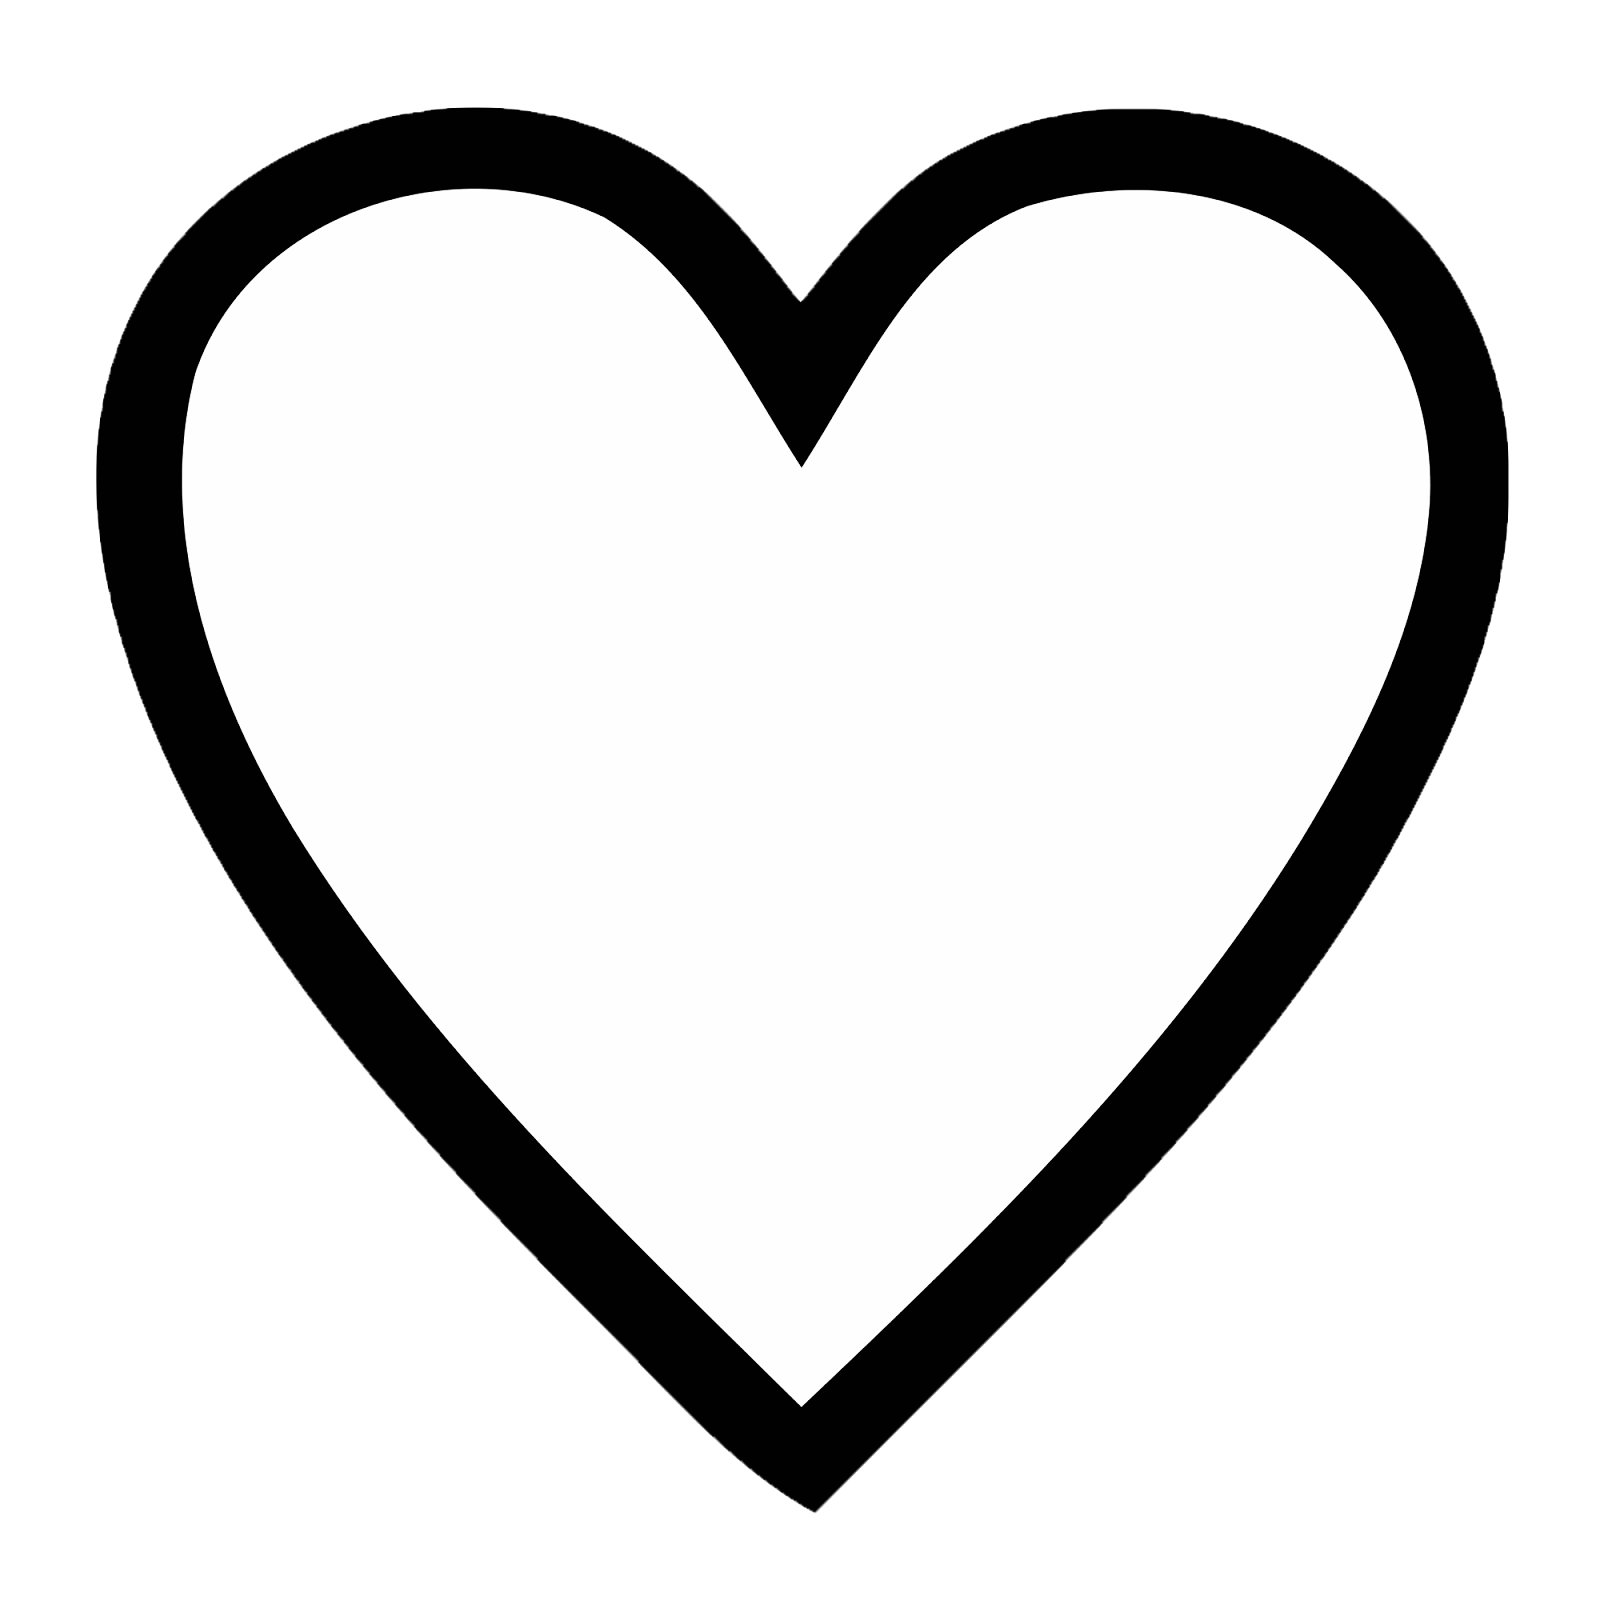 Line Art Love Heart : Real heart drawing clipart panda free images